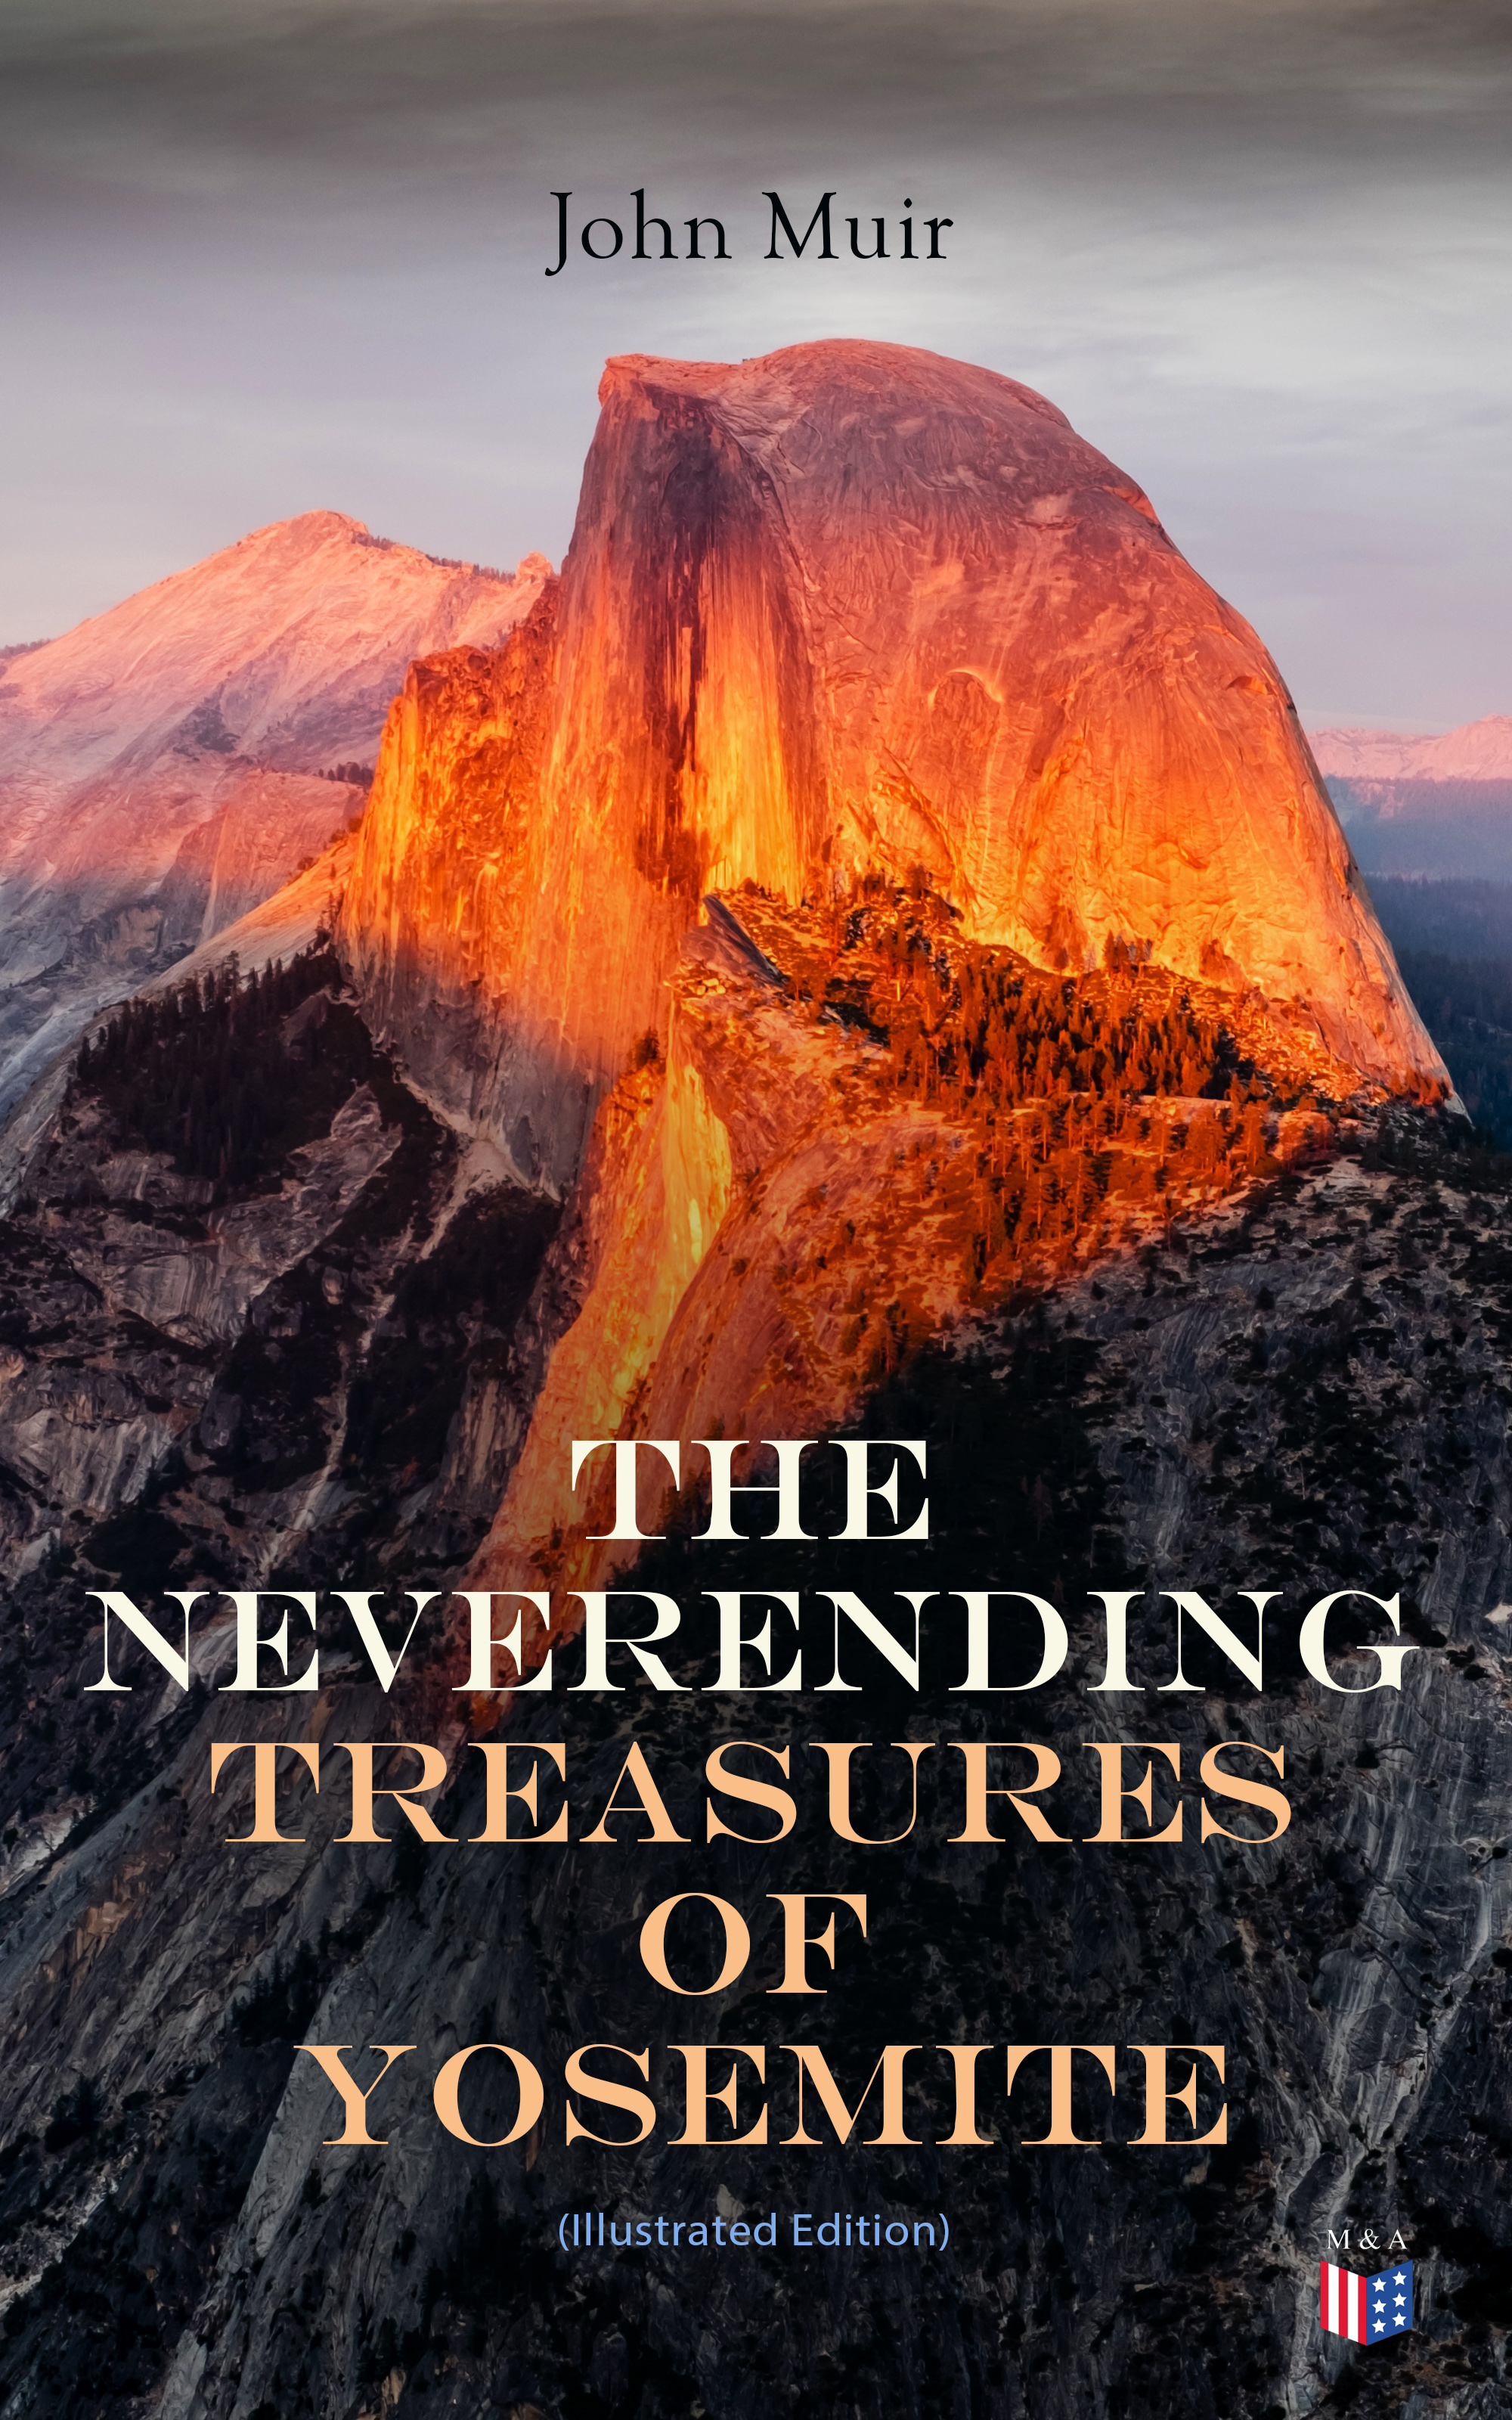 John Muir The Neverending Treasures of Yosemite (Illustrated Edition) chalets trendsetting mountain treasures